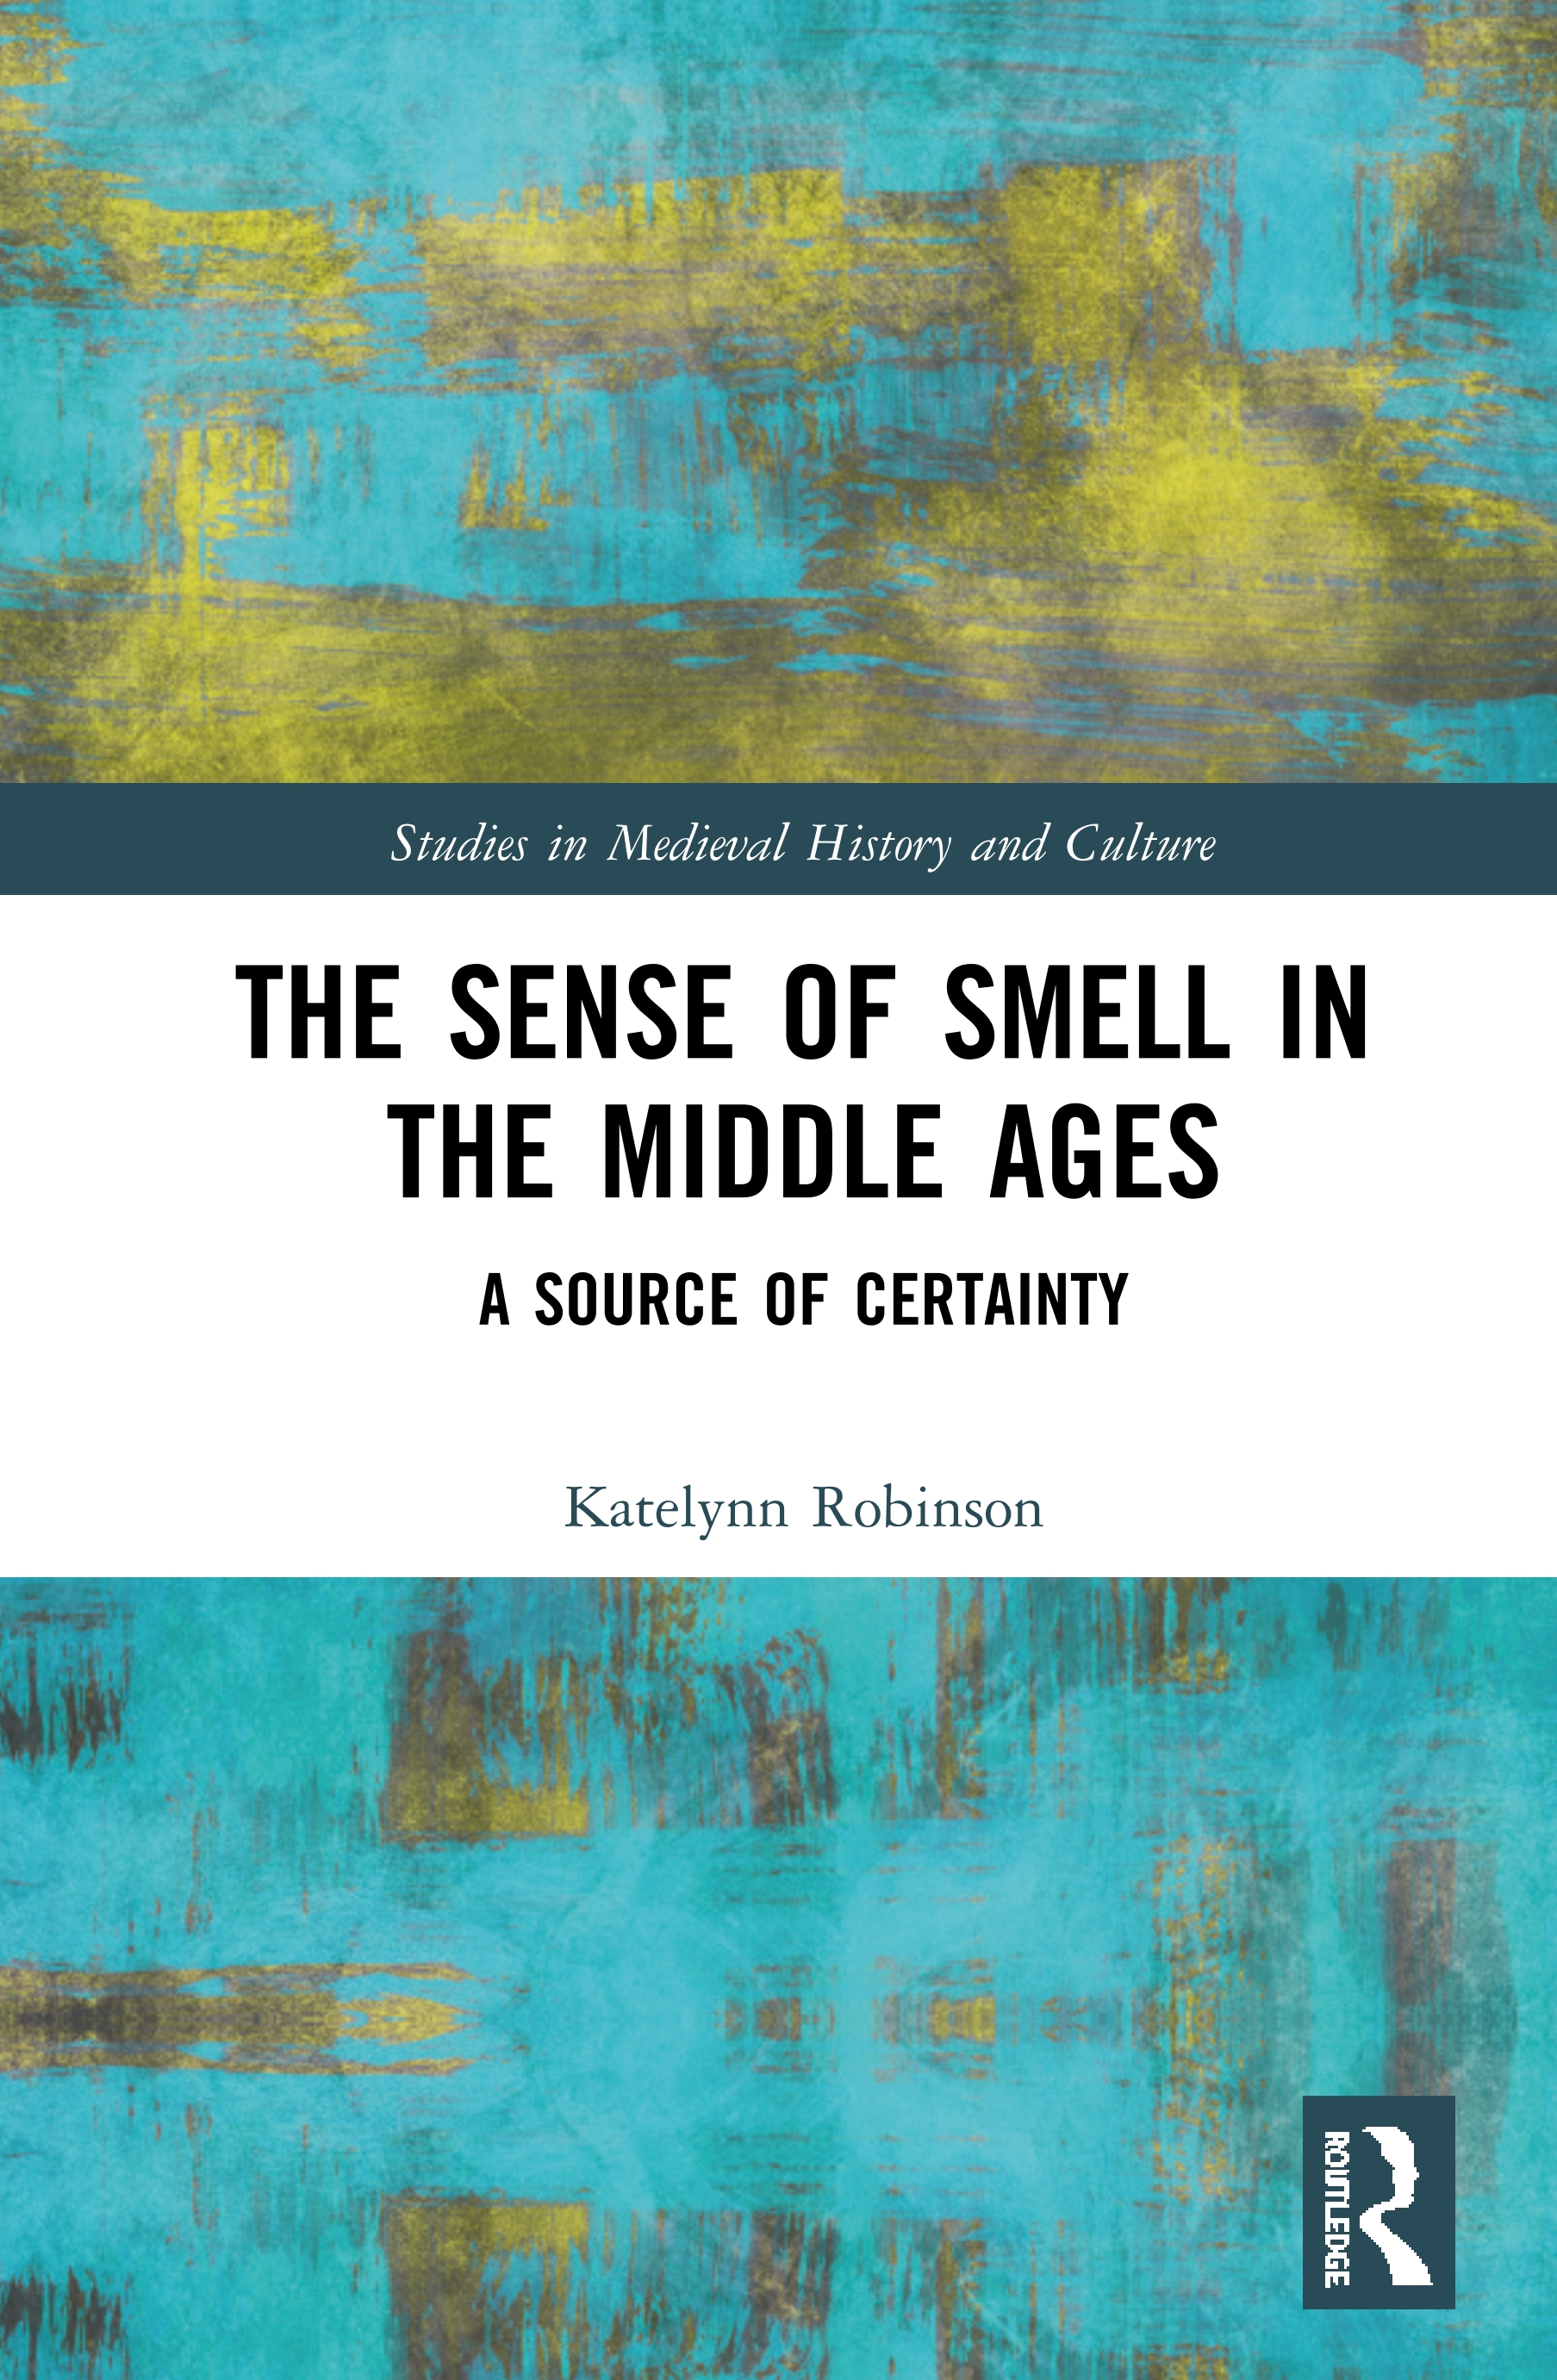 The Sense of Smell in the Middle Ages: A Source of Certainty book cover